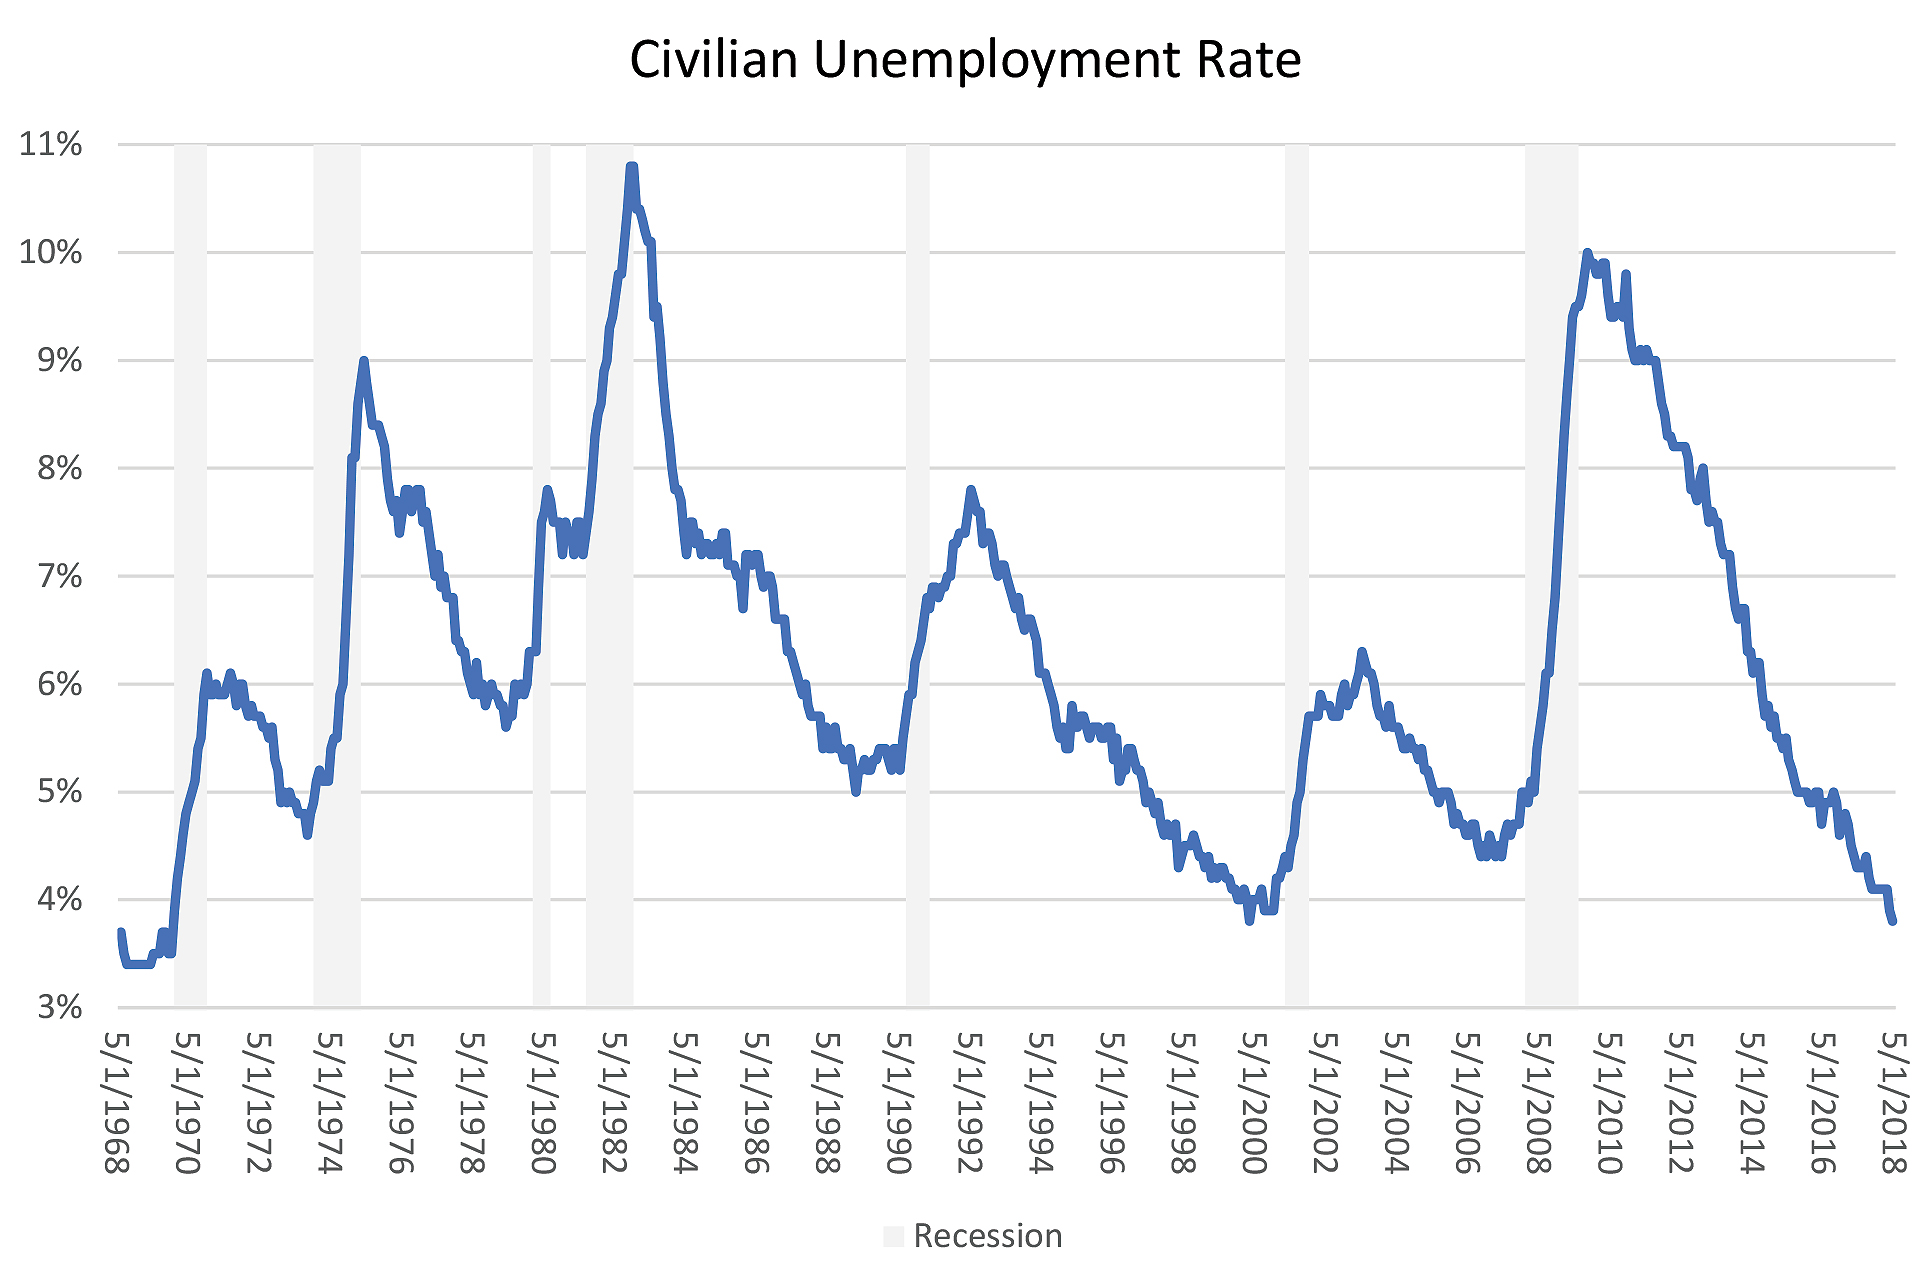 Civilian Unemployment Rate